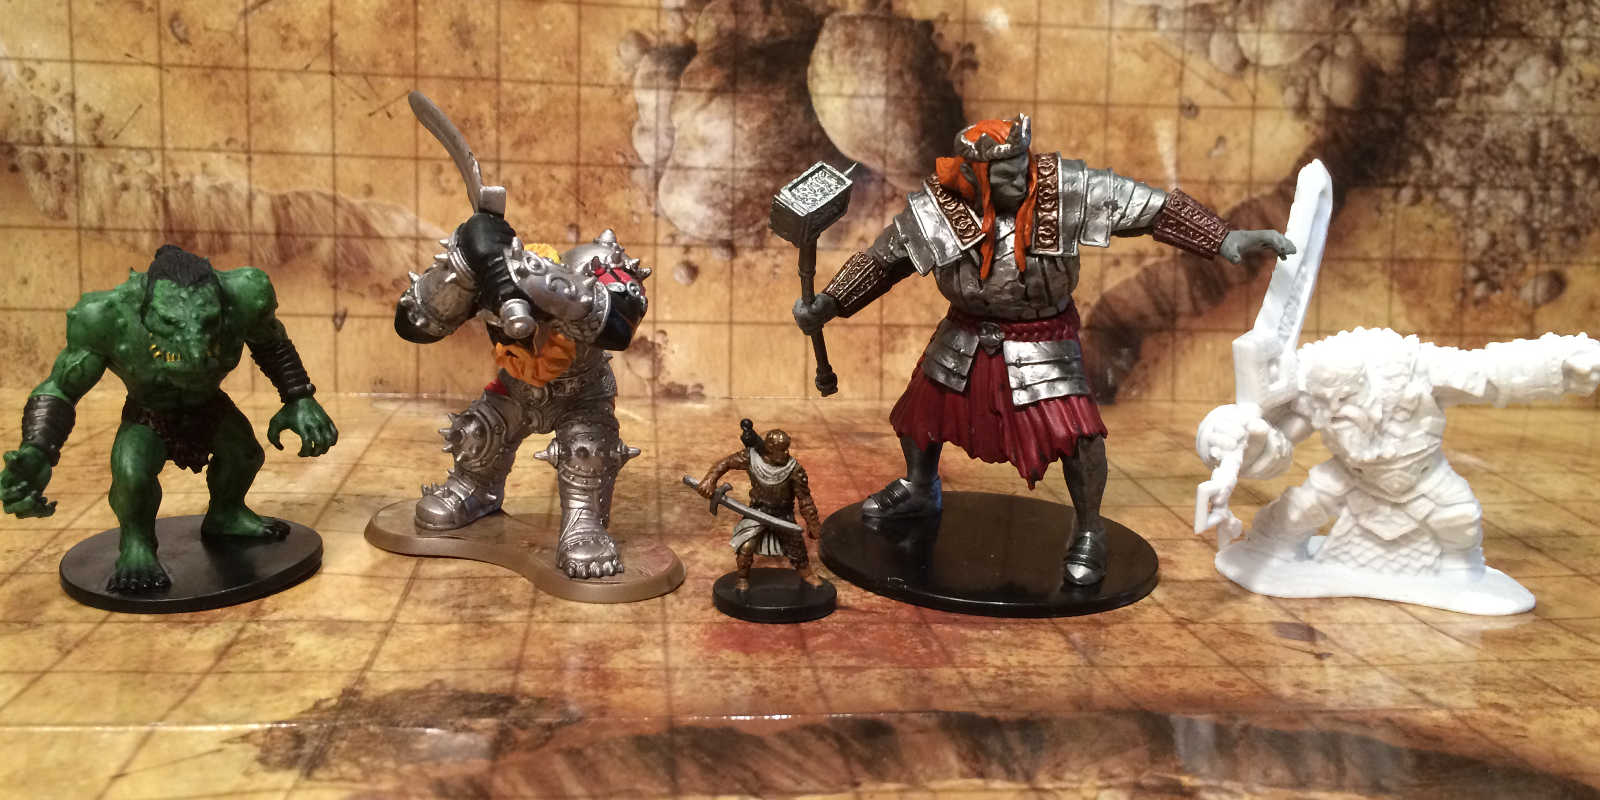 Raging Owlbear: D&D: Giant Miniatures Are Back (and bigger